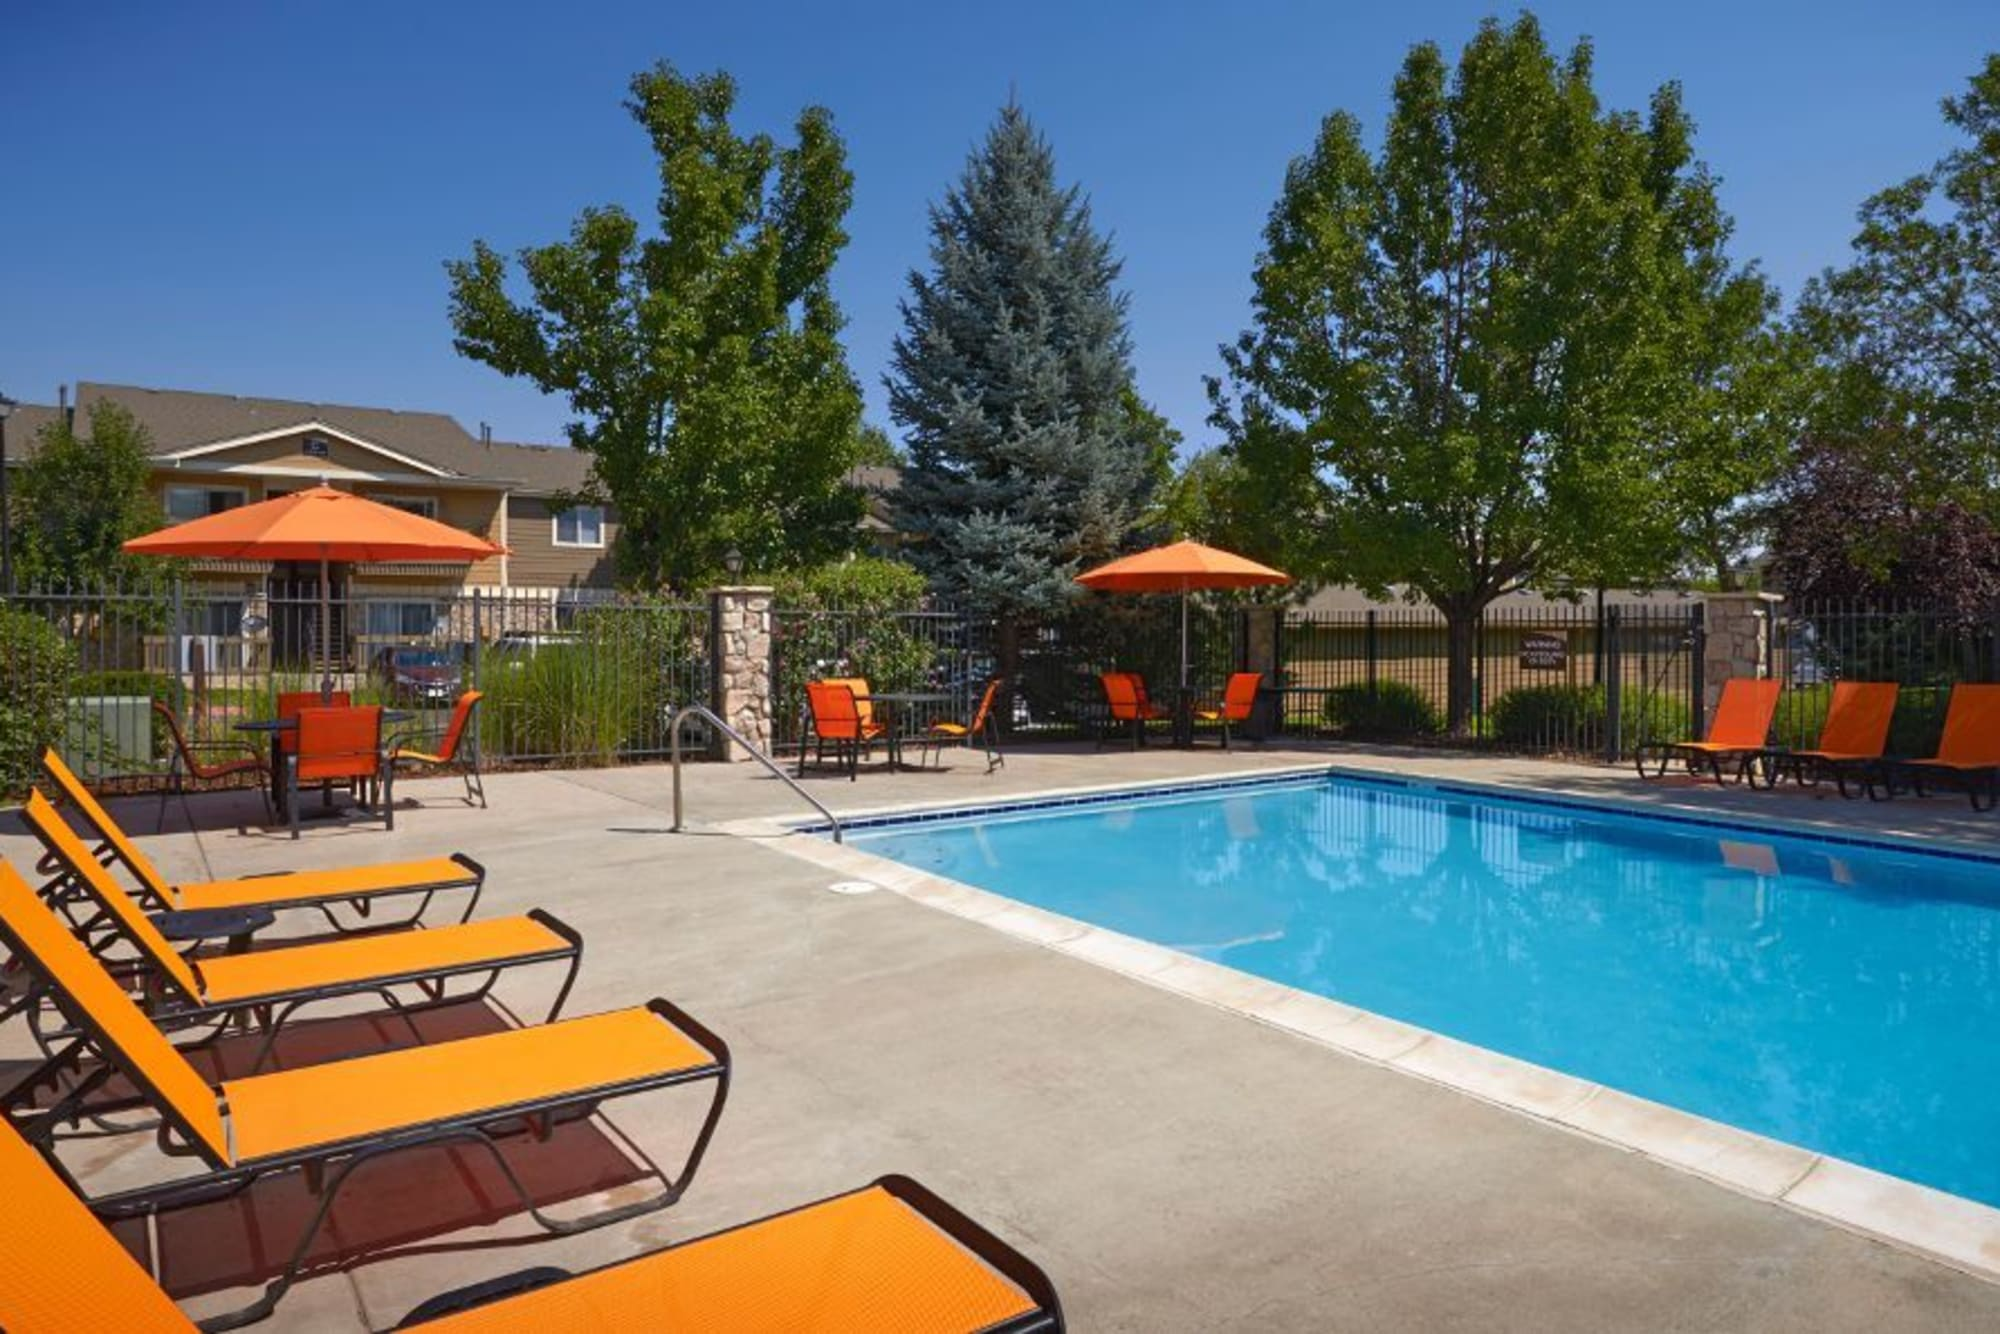 Sparkling pool with lounge chairs at Crossroads at City Center Apartments in Aurora, Colorado